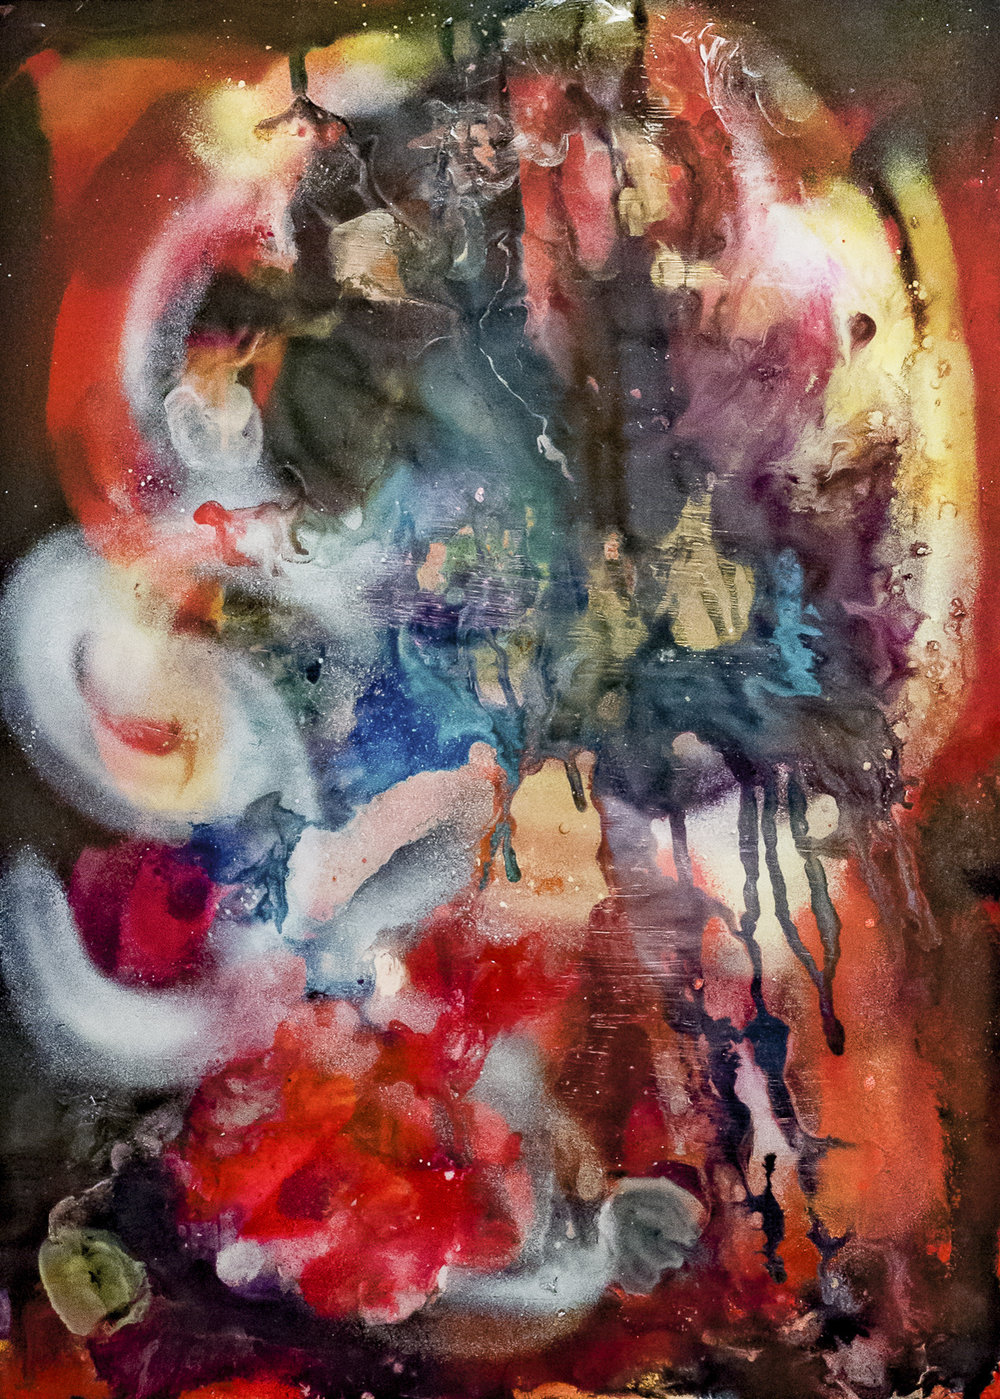 The Moon laughed at my folly, acrylic/mixed media, print 55 x 82cm.